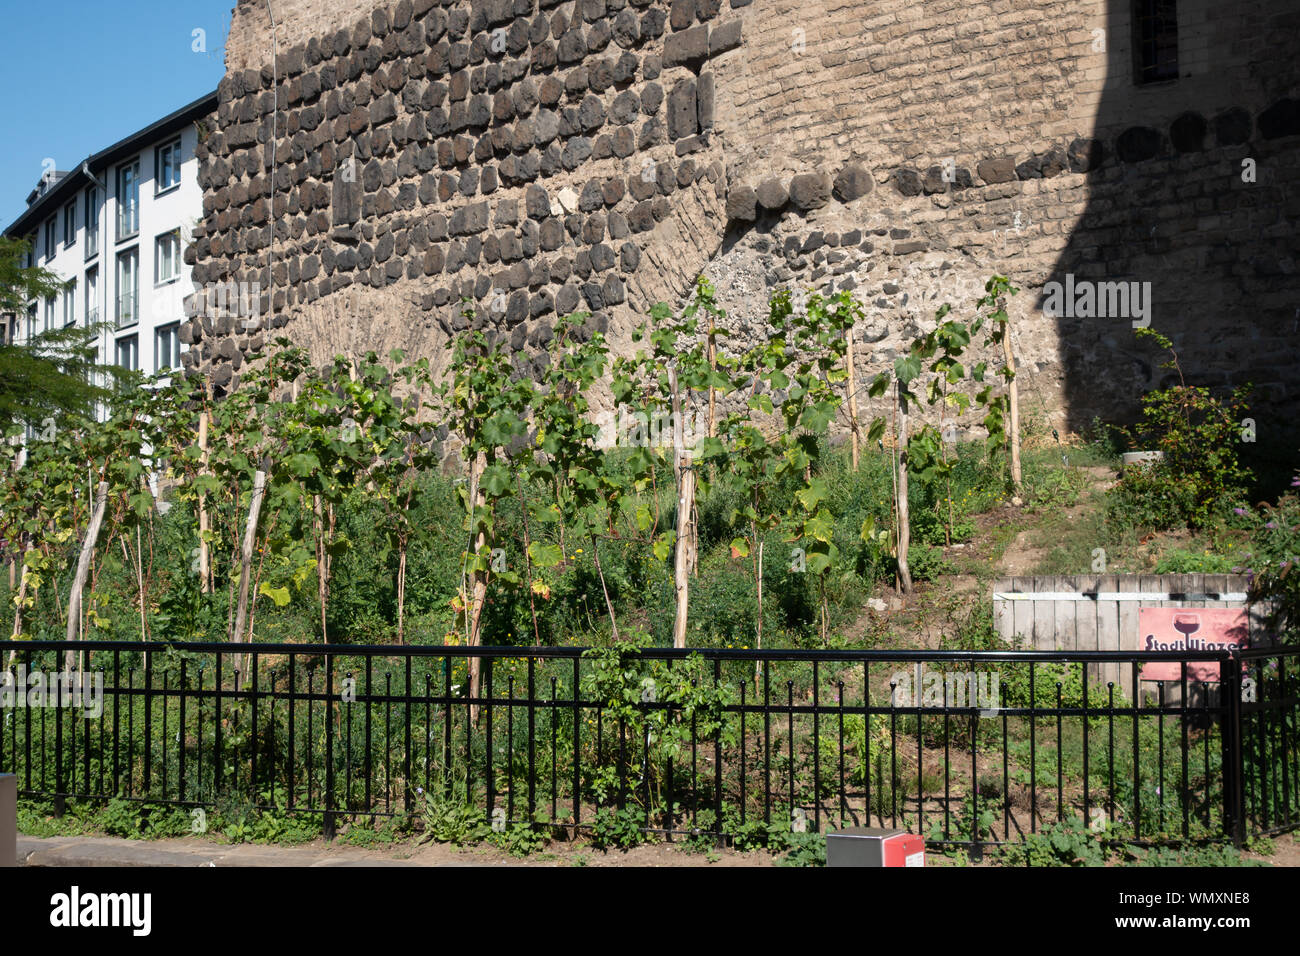 Inner city vineyard at the Severinstor in Cologne, Germany. Stock Photo